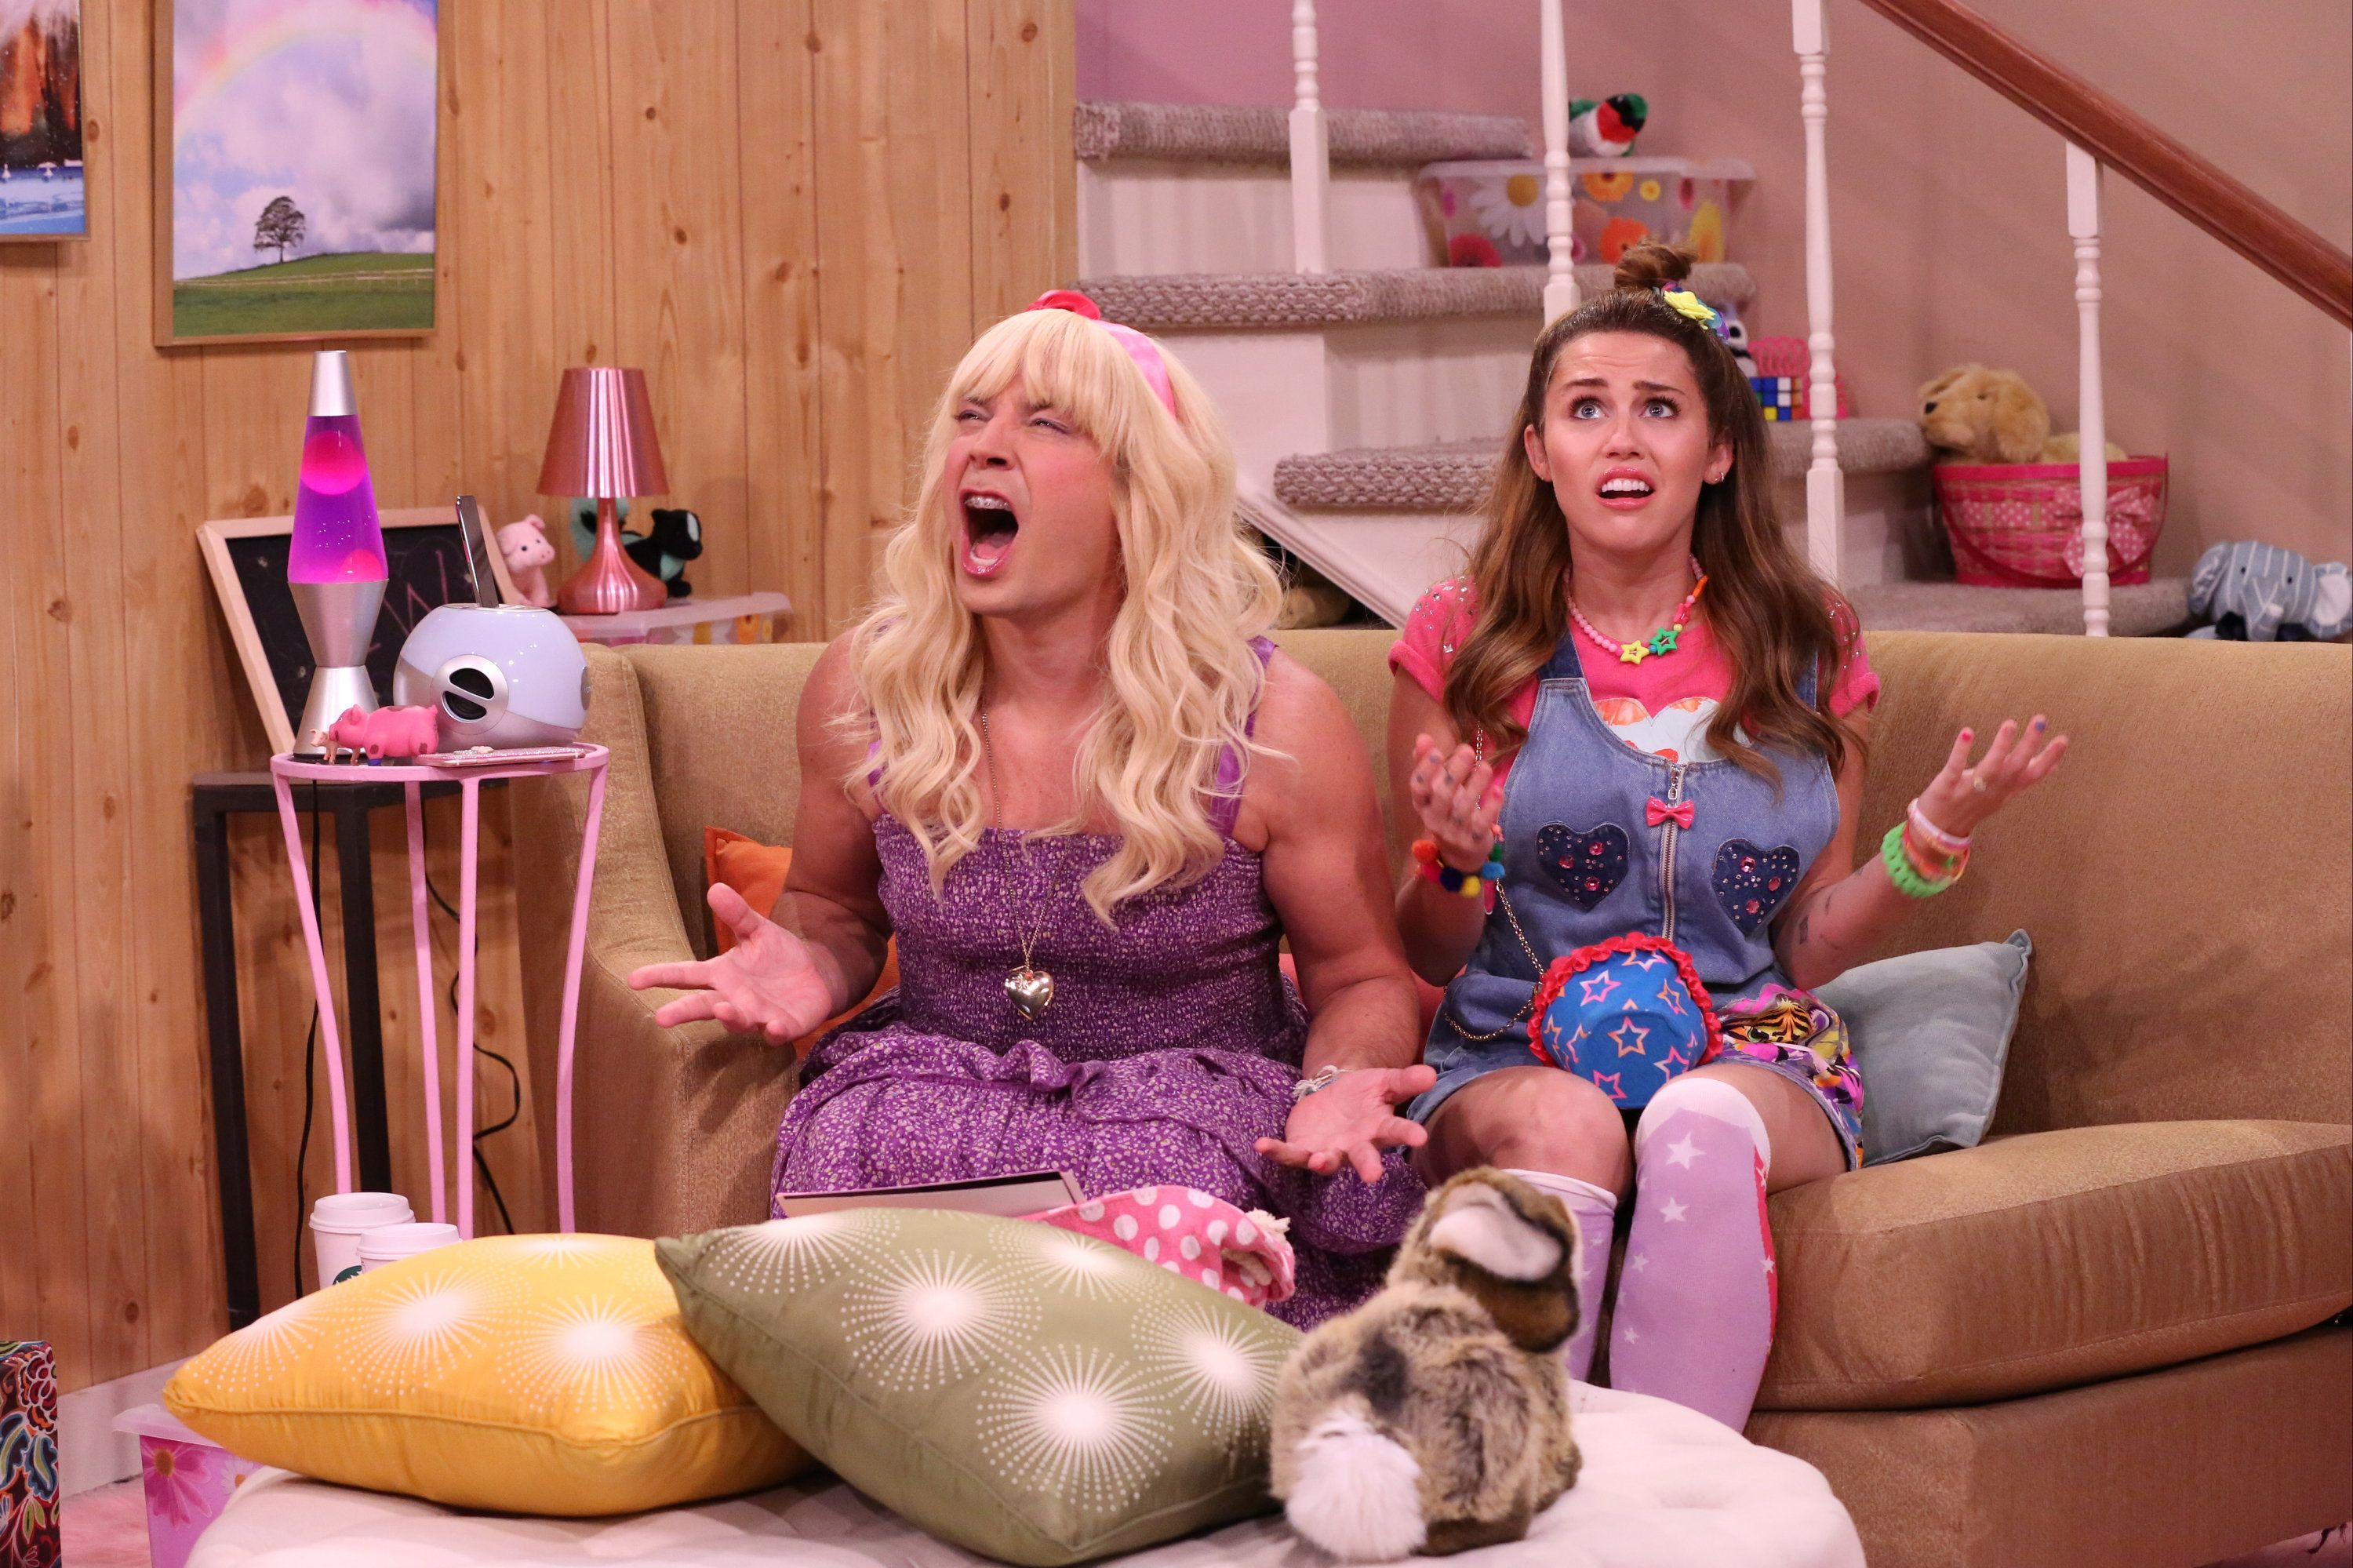 Miley Cyrus Brings Back The 'Hannah Montana' Look For